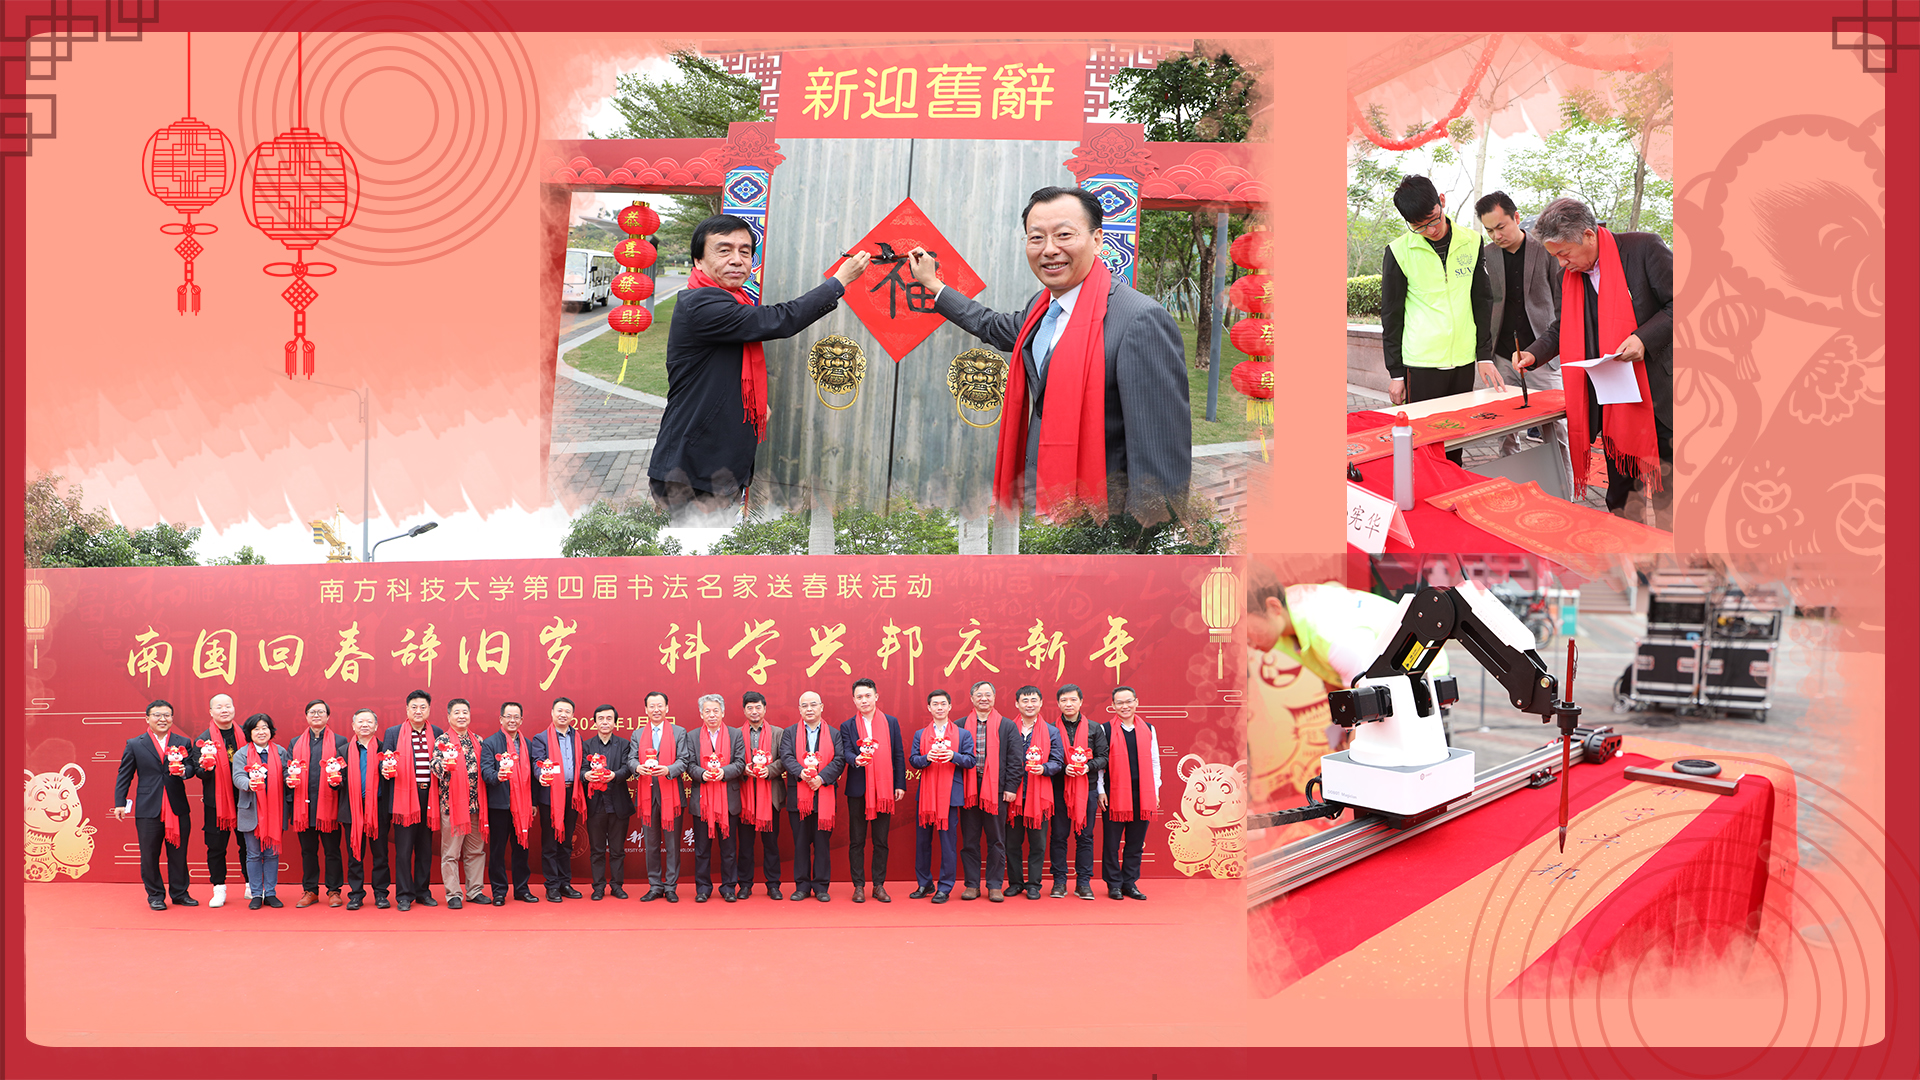 Fourth Spring Couplet Calligraphy Festival livens first day on campus in 2020